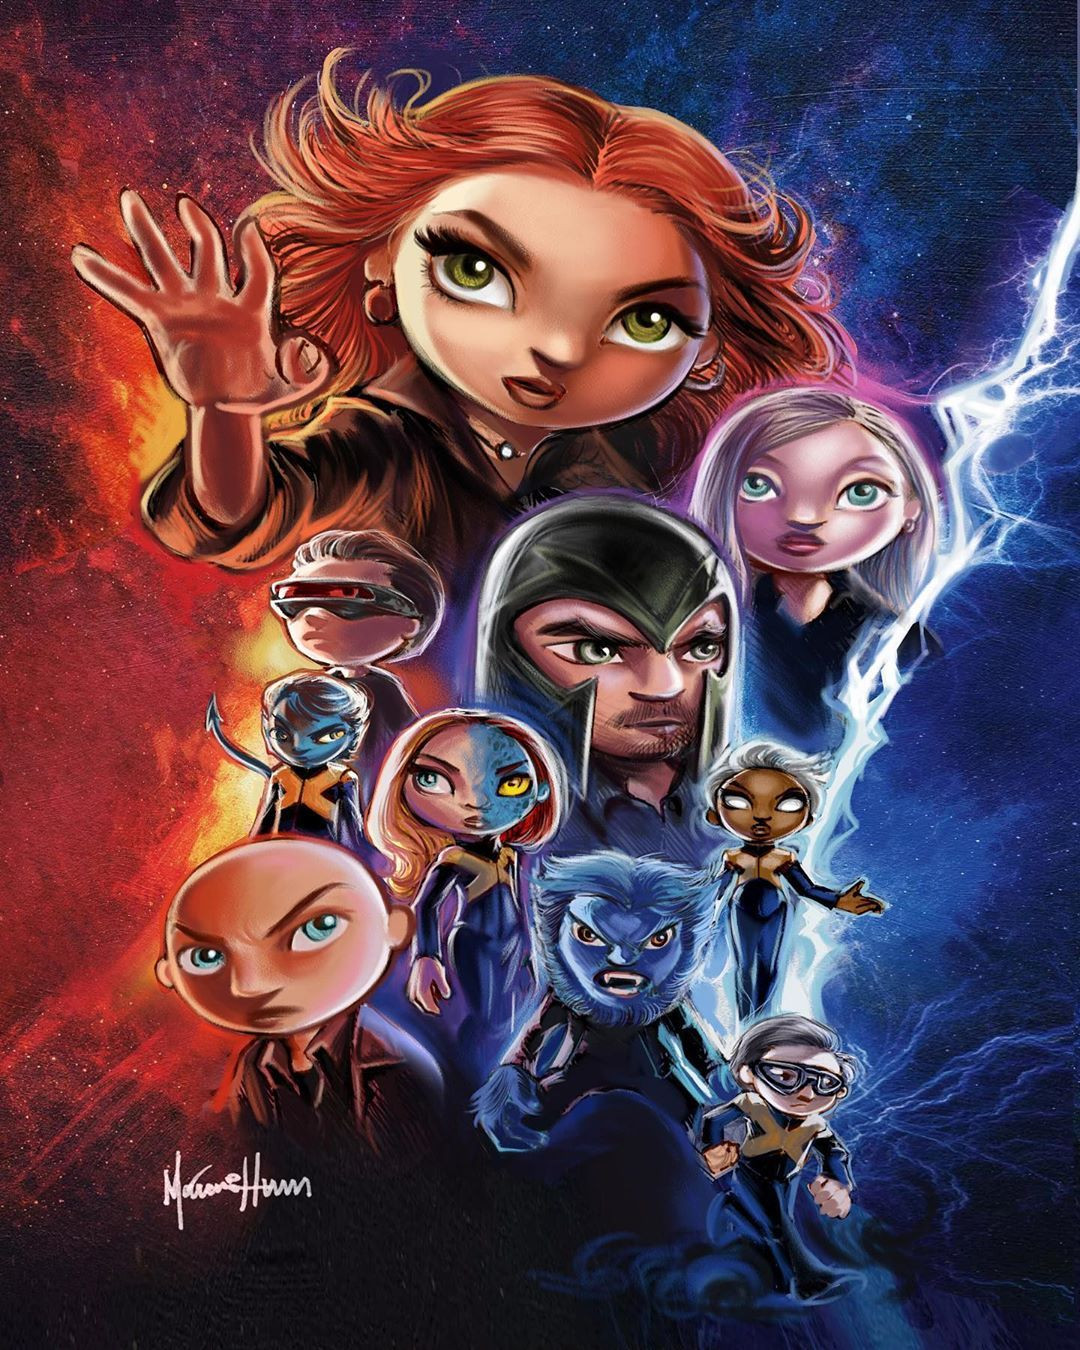 X Men On Instagram X Men Dark Phoenix Phoenix Mystique Storm Nightcrawler Cyclops Quicksilver Beast Professor X Ma Nightcrawler Dark Phoenix X Men